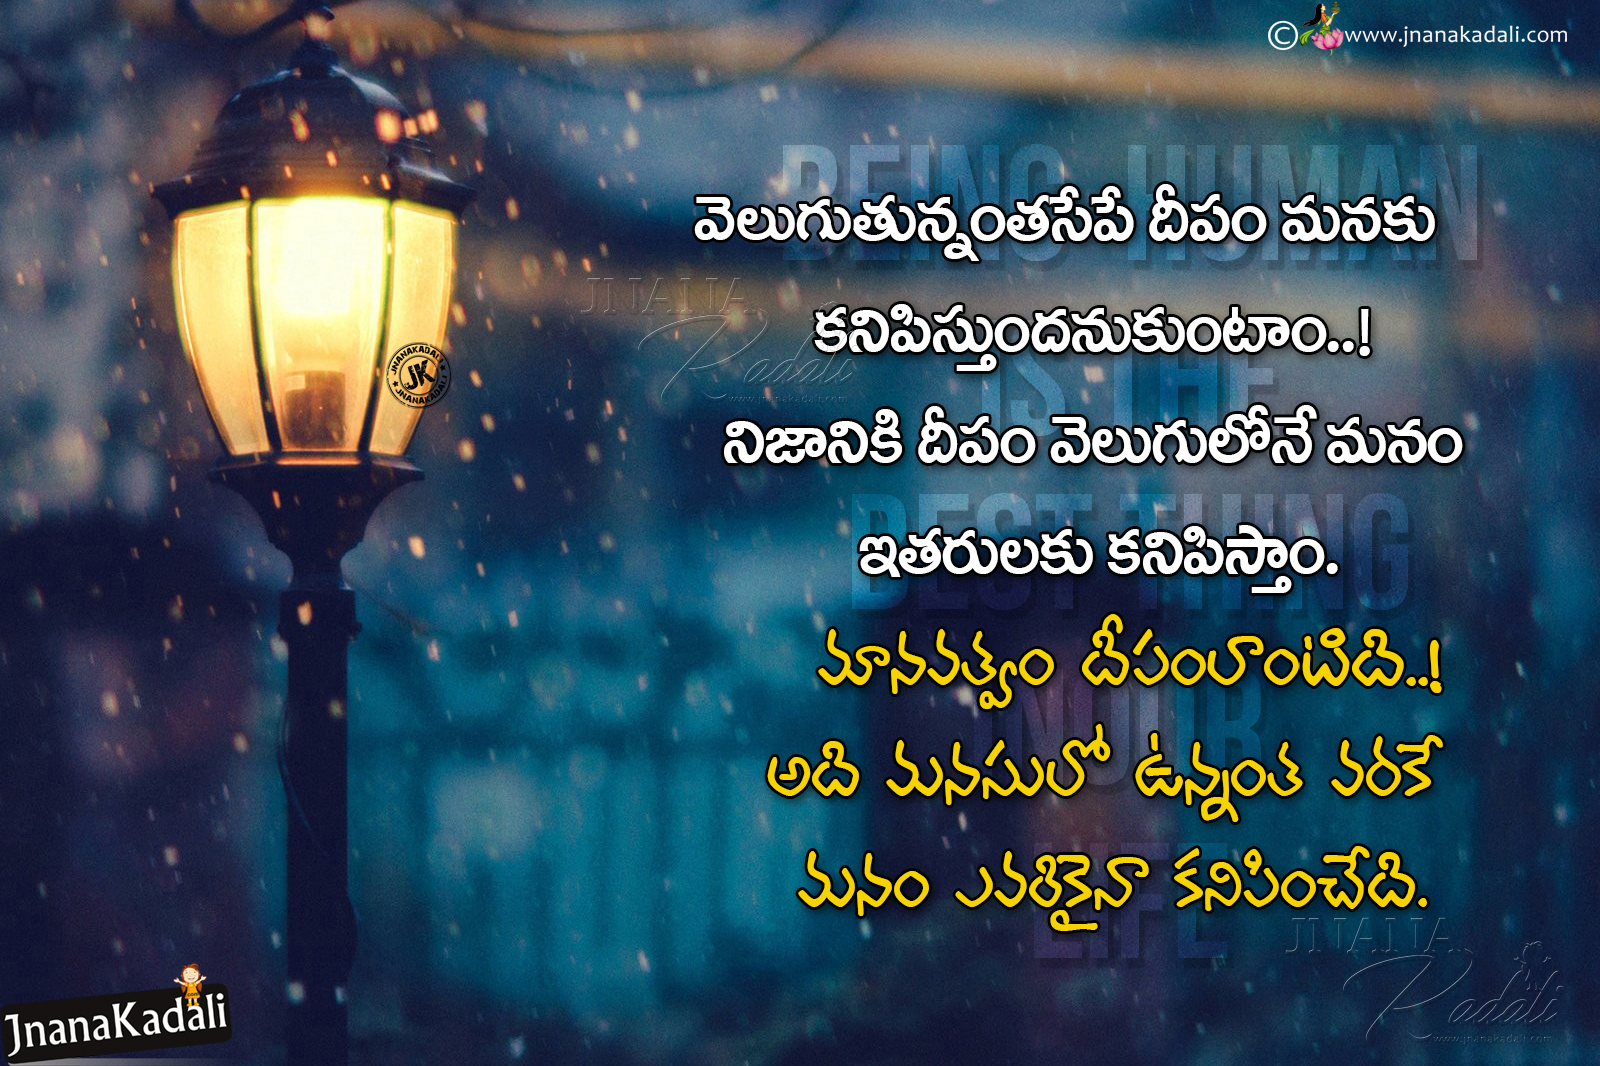 Best Self Motivational Quotes For Our Life To Change Our Attitude Gently In Telugu Jnana Kadali Com Telugu Quotes English Quotes Hindi Quotes Tamil Quotes Dharmasandehalu